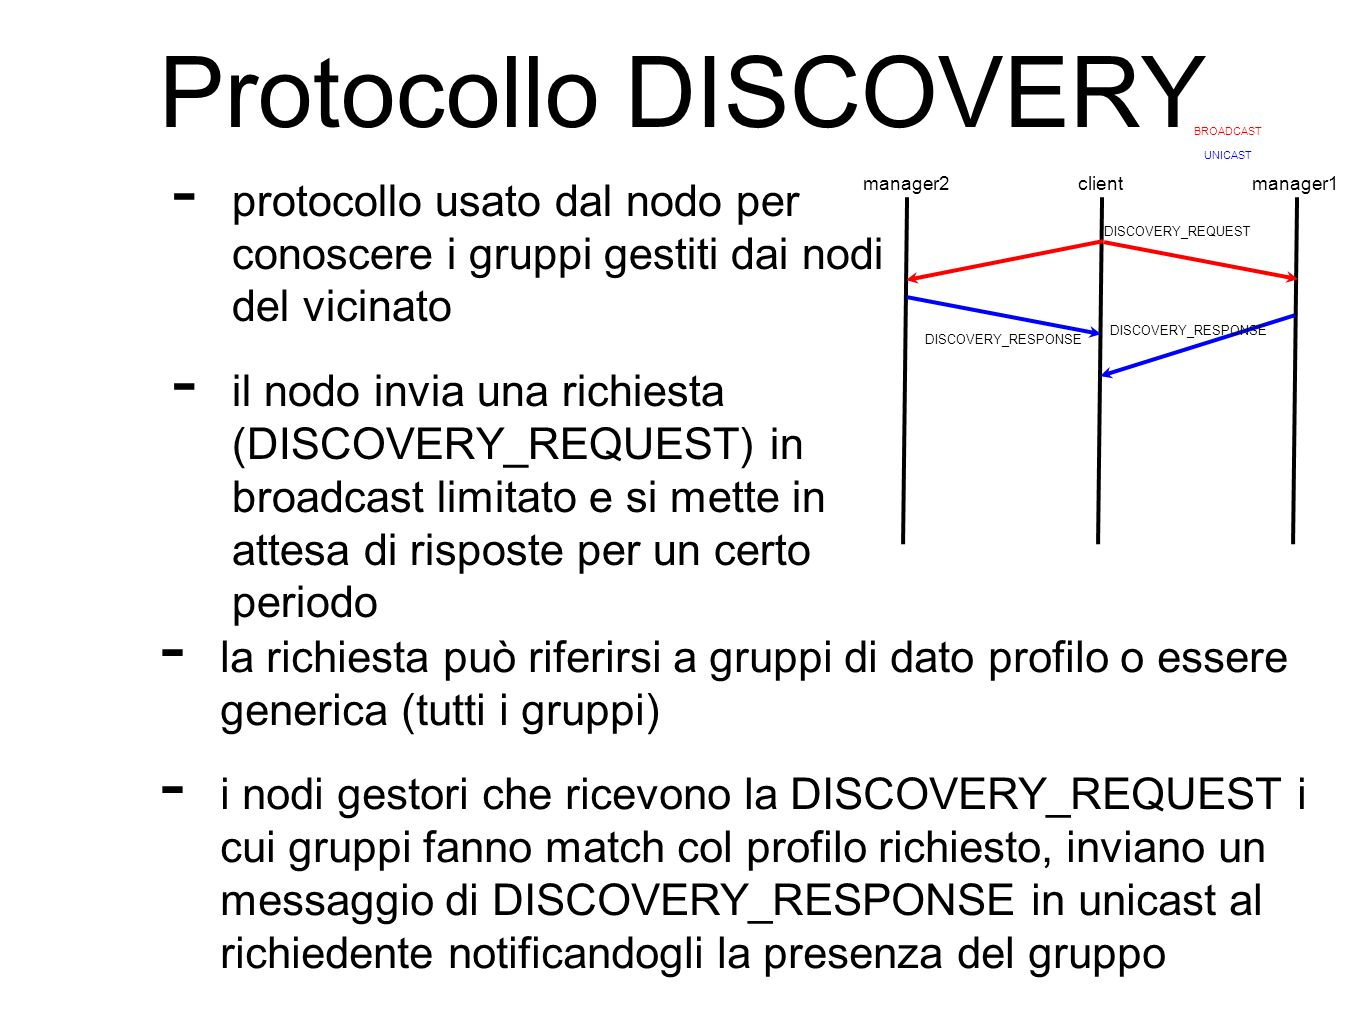 Protocollo DISCOVERY DISCOVERY_REQUEST. client. DISCOVERY_RESPONSE. BROADCAST. UNICAST. manager1.